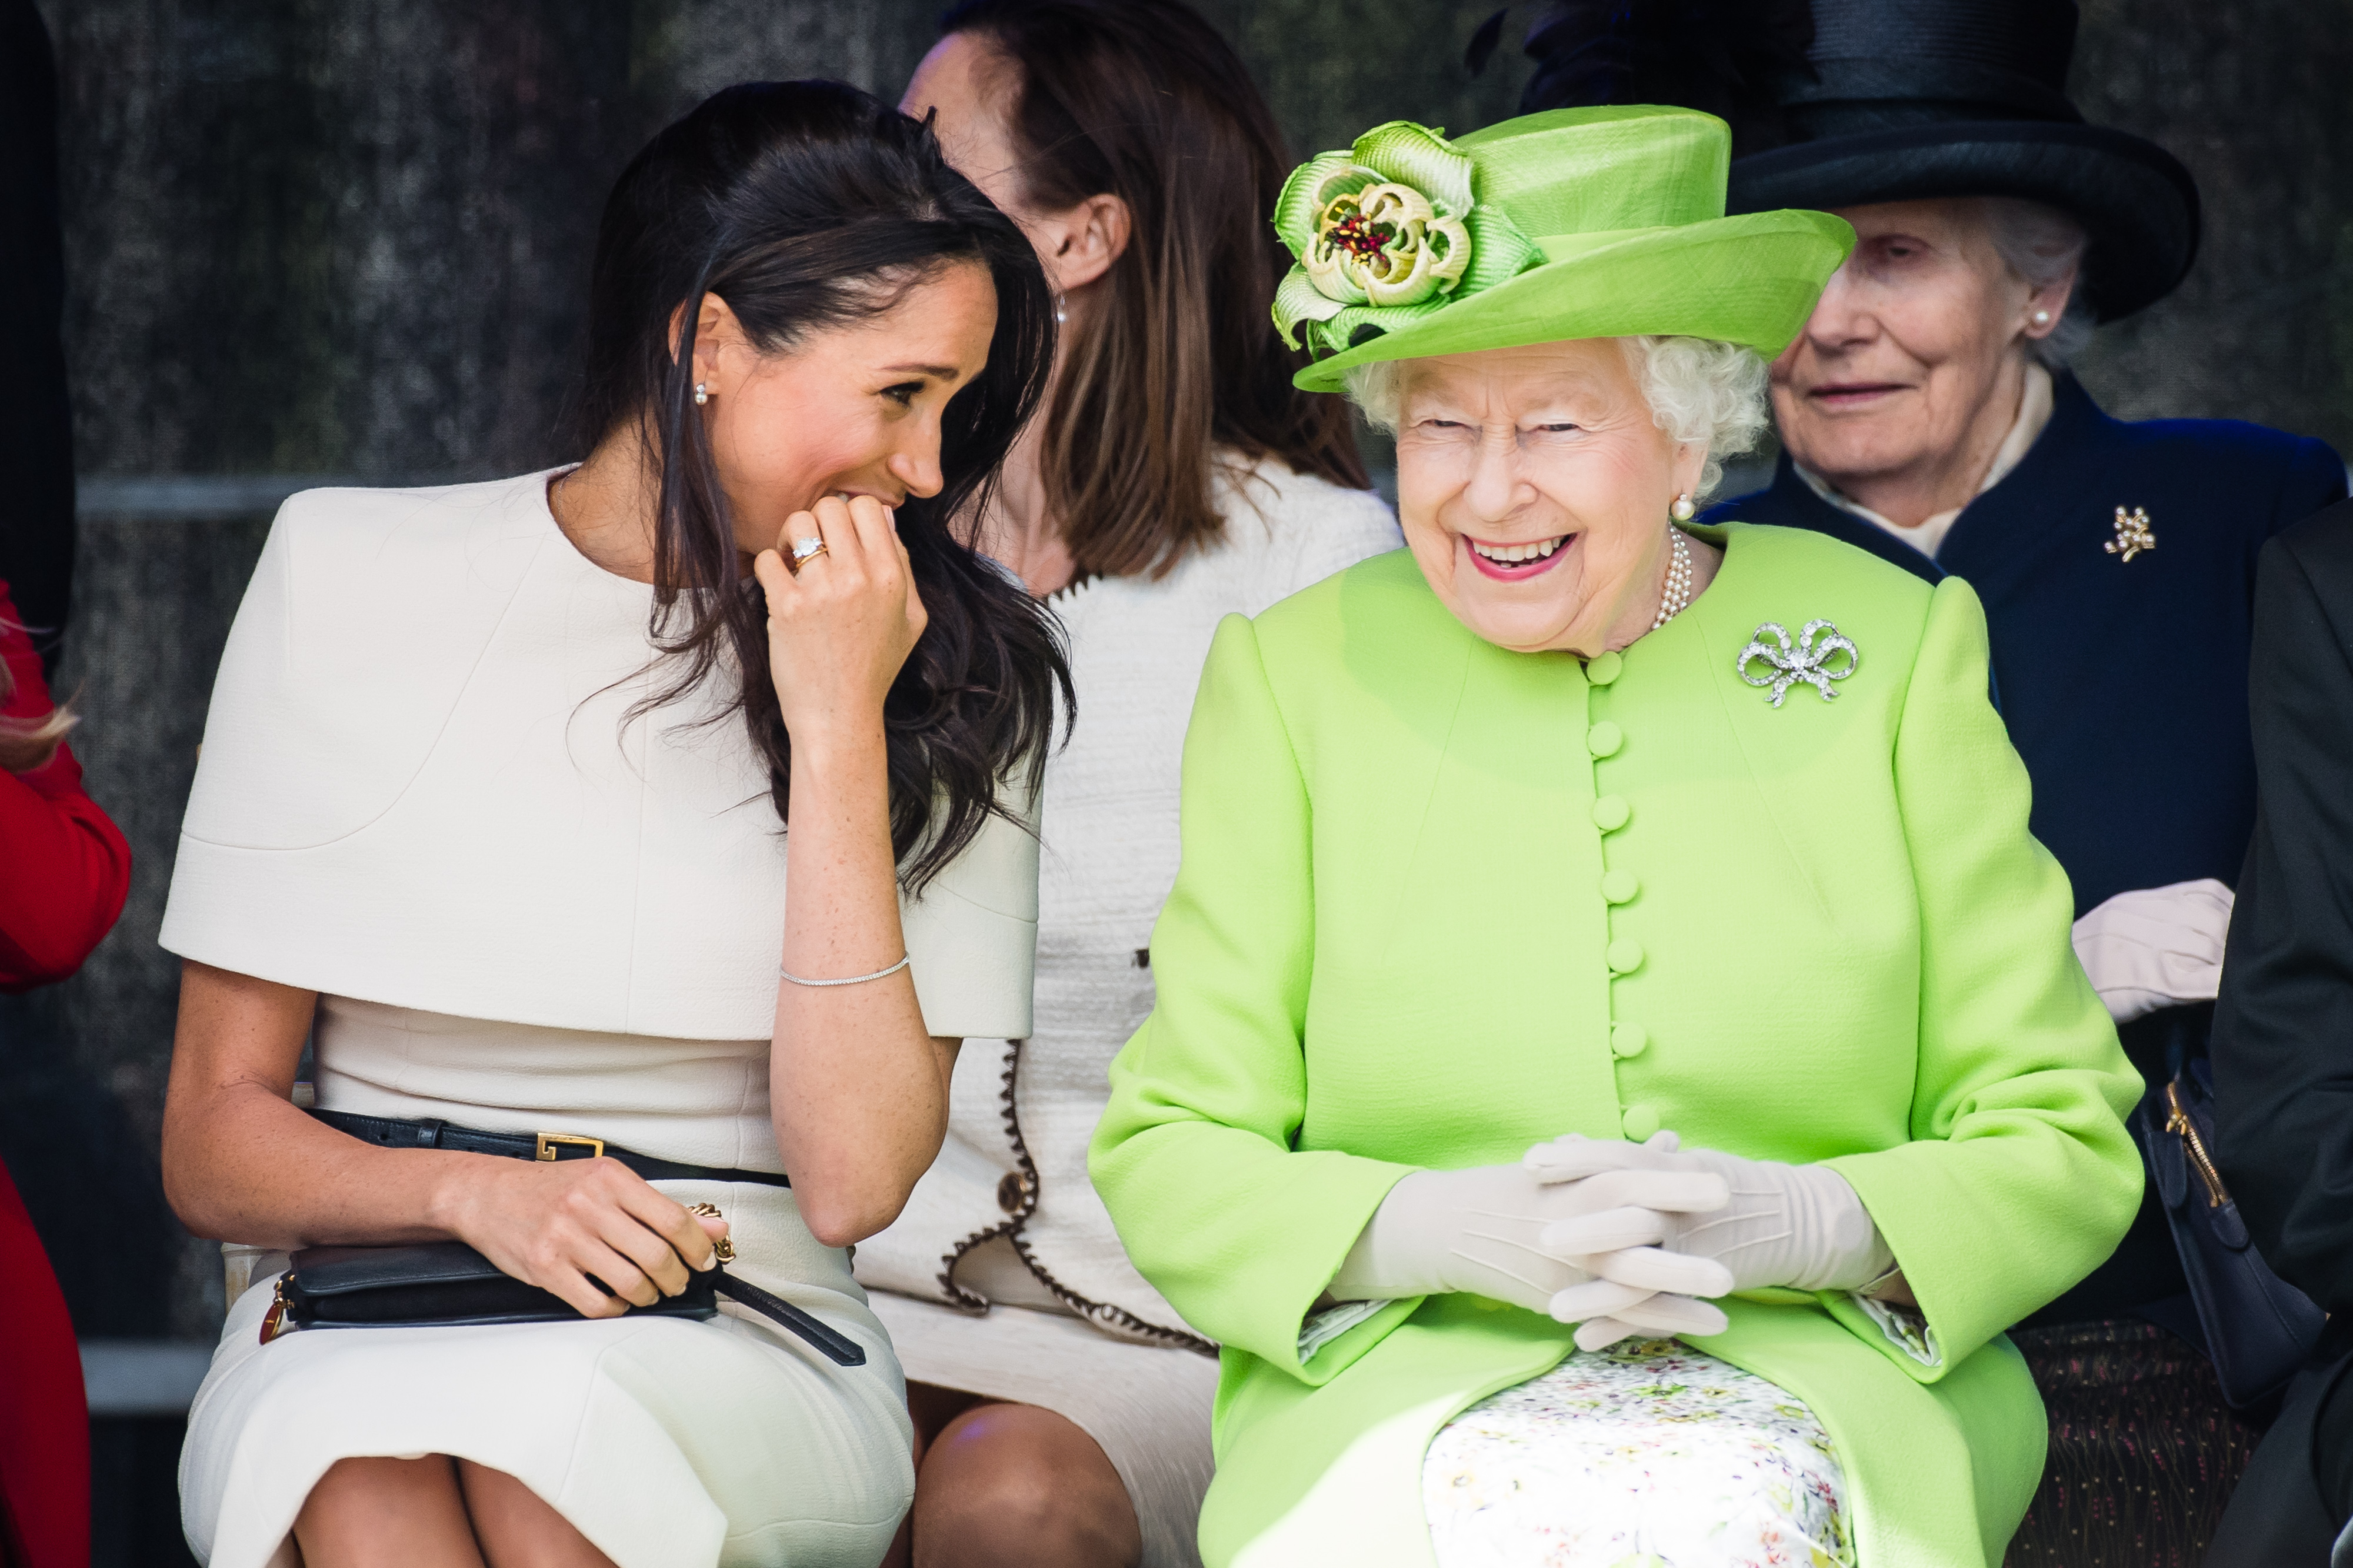 Meghan Markle and the queen had their first solo outing, and appear to be besties based on the pics